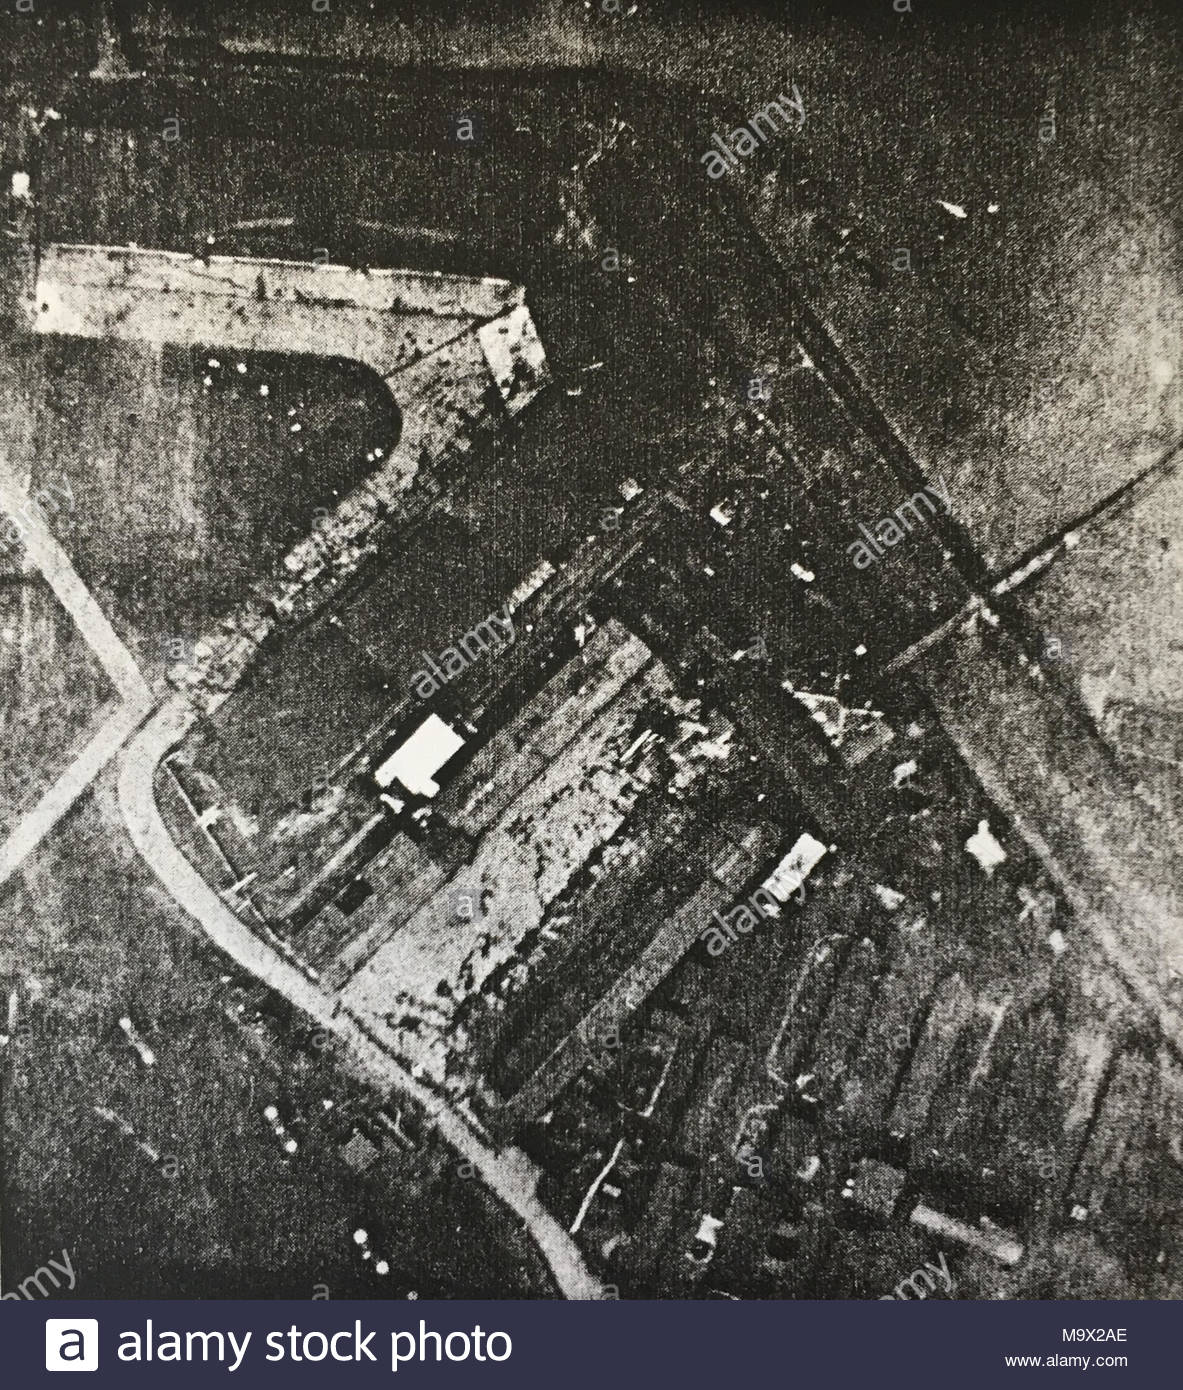 RFC Joyce Green Aerodrome Main Buildings Vertical Aerial Photograph Taken On 28th Feb 1918 By